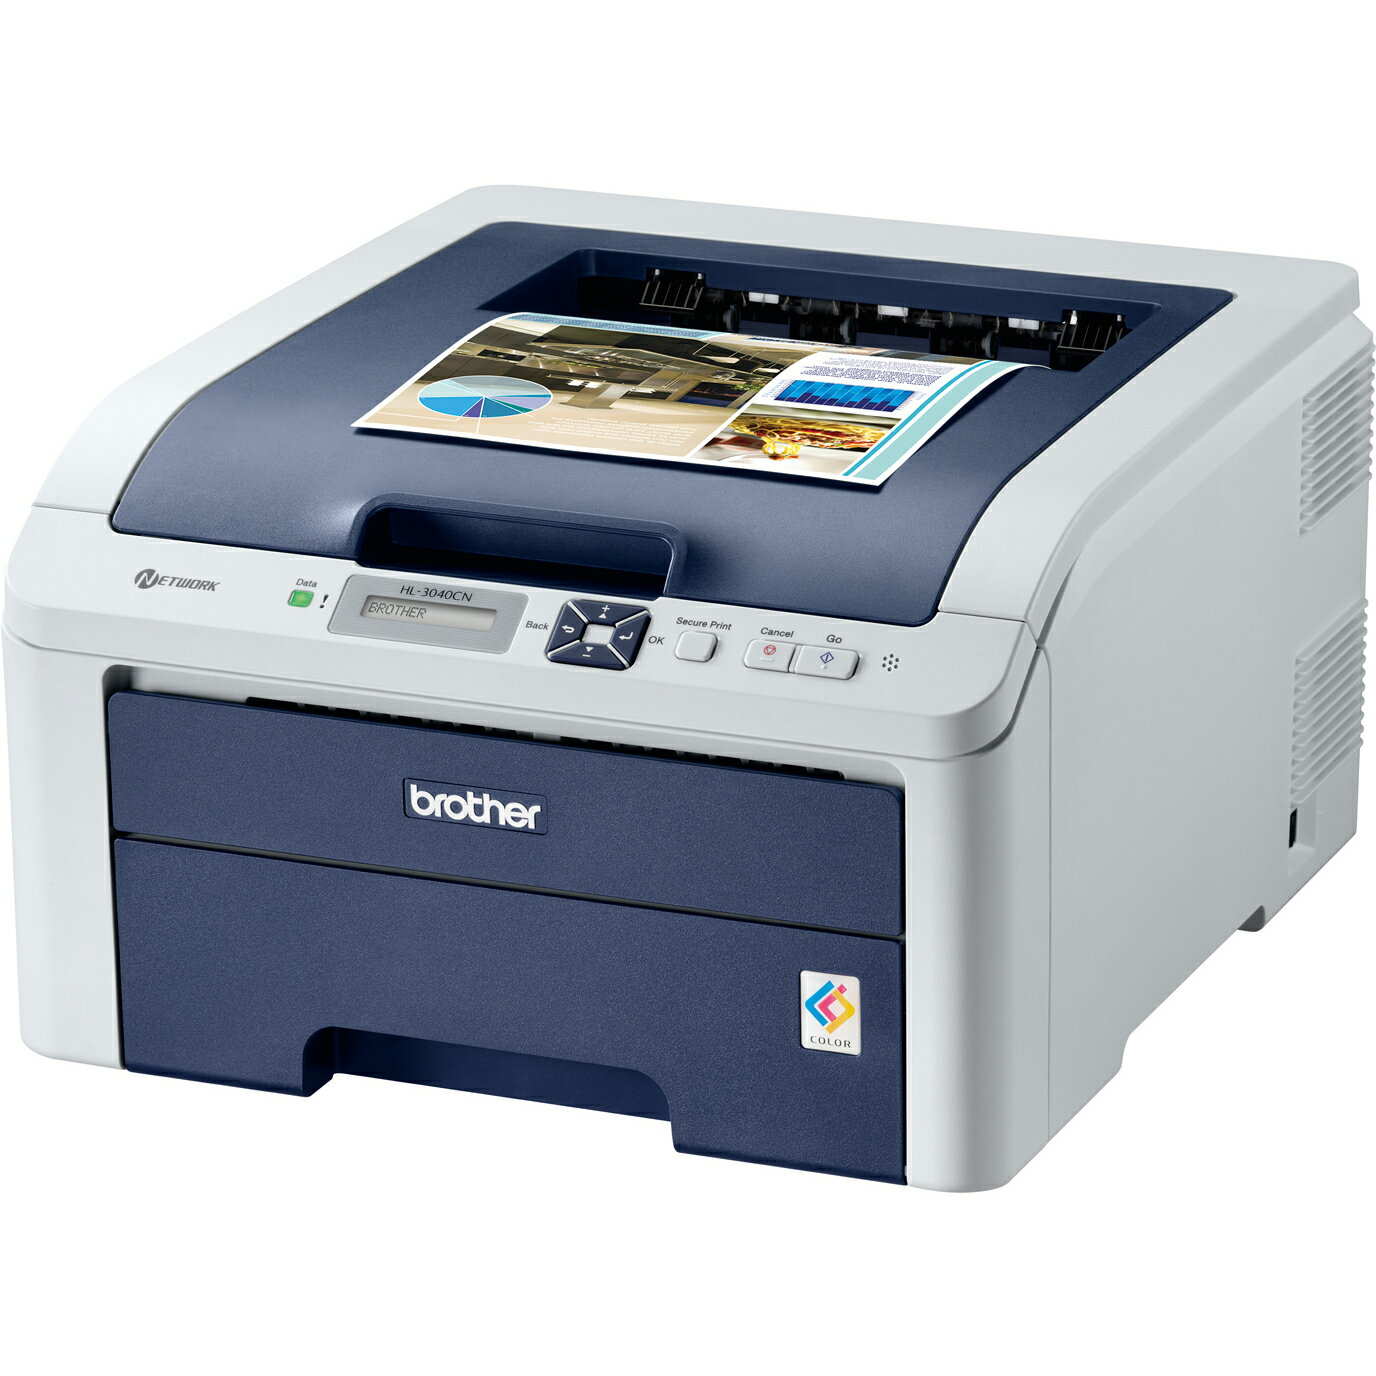 Brother HL-3040CN Digital Color Printer with Networking 2